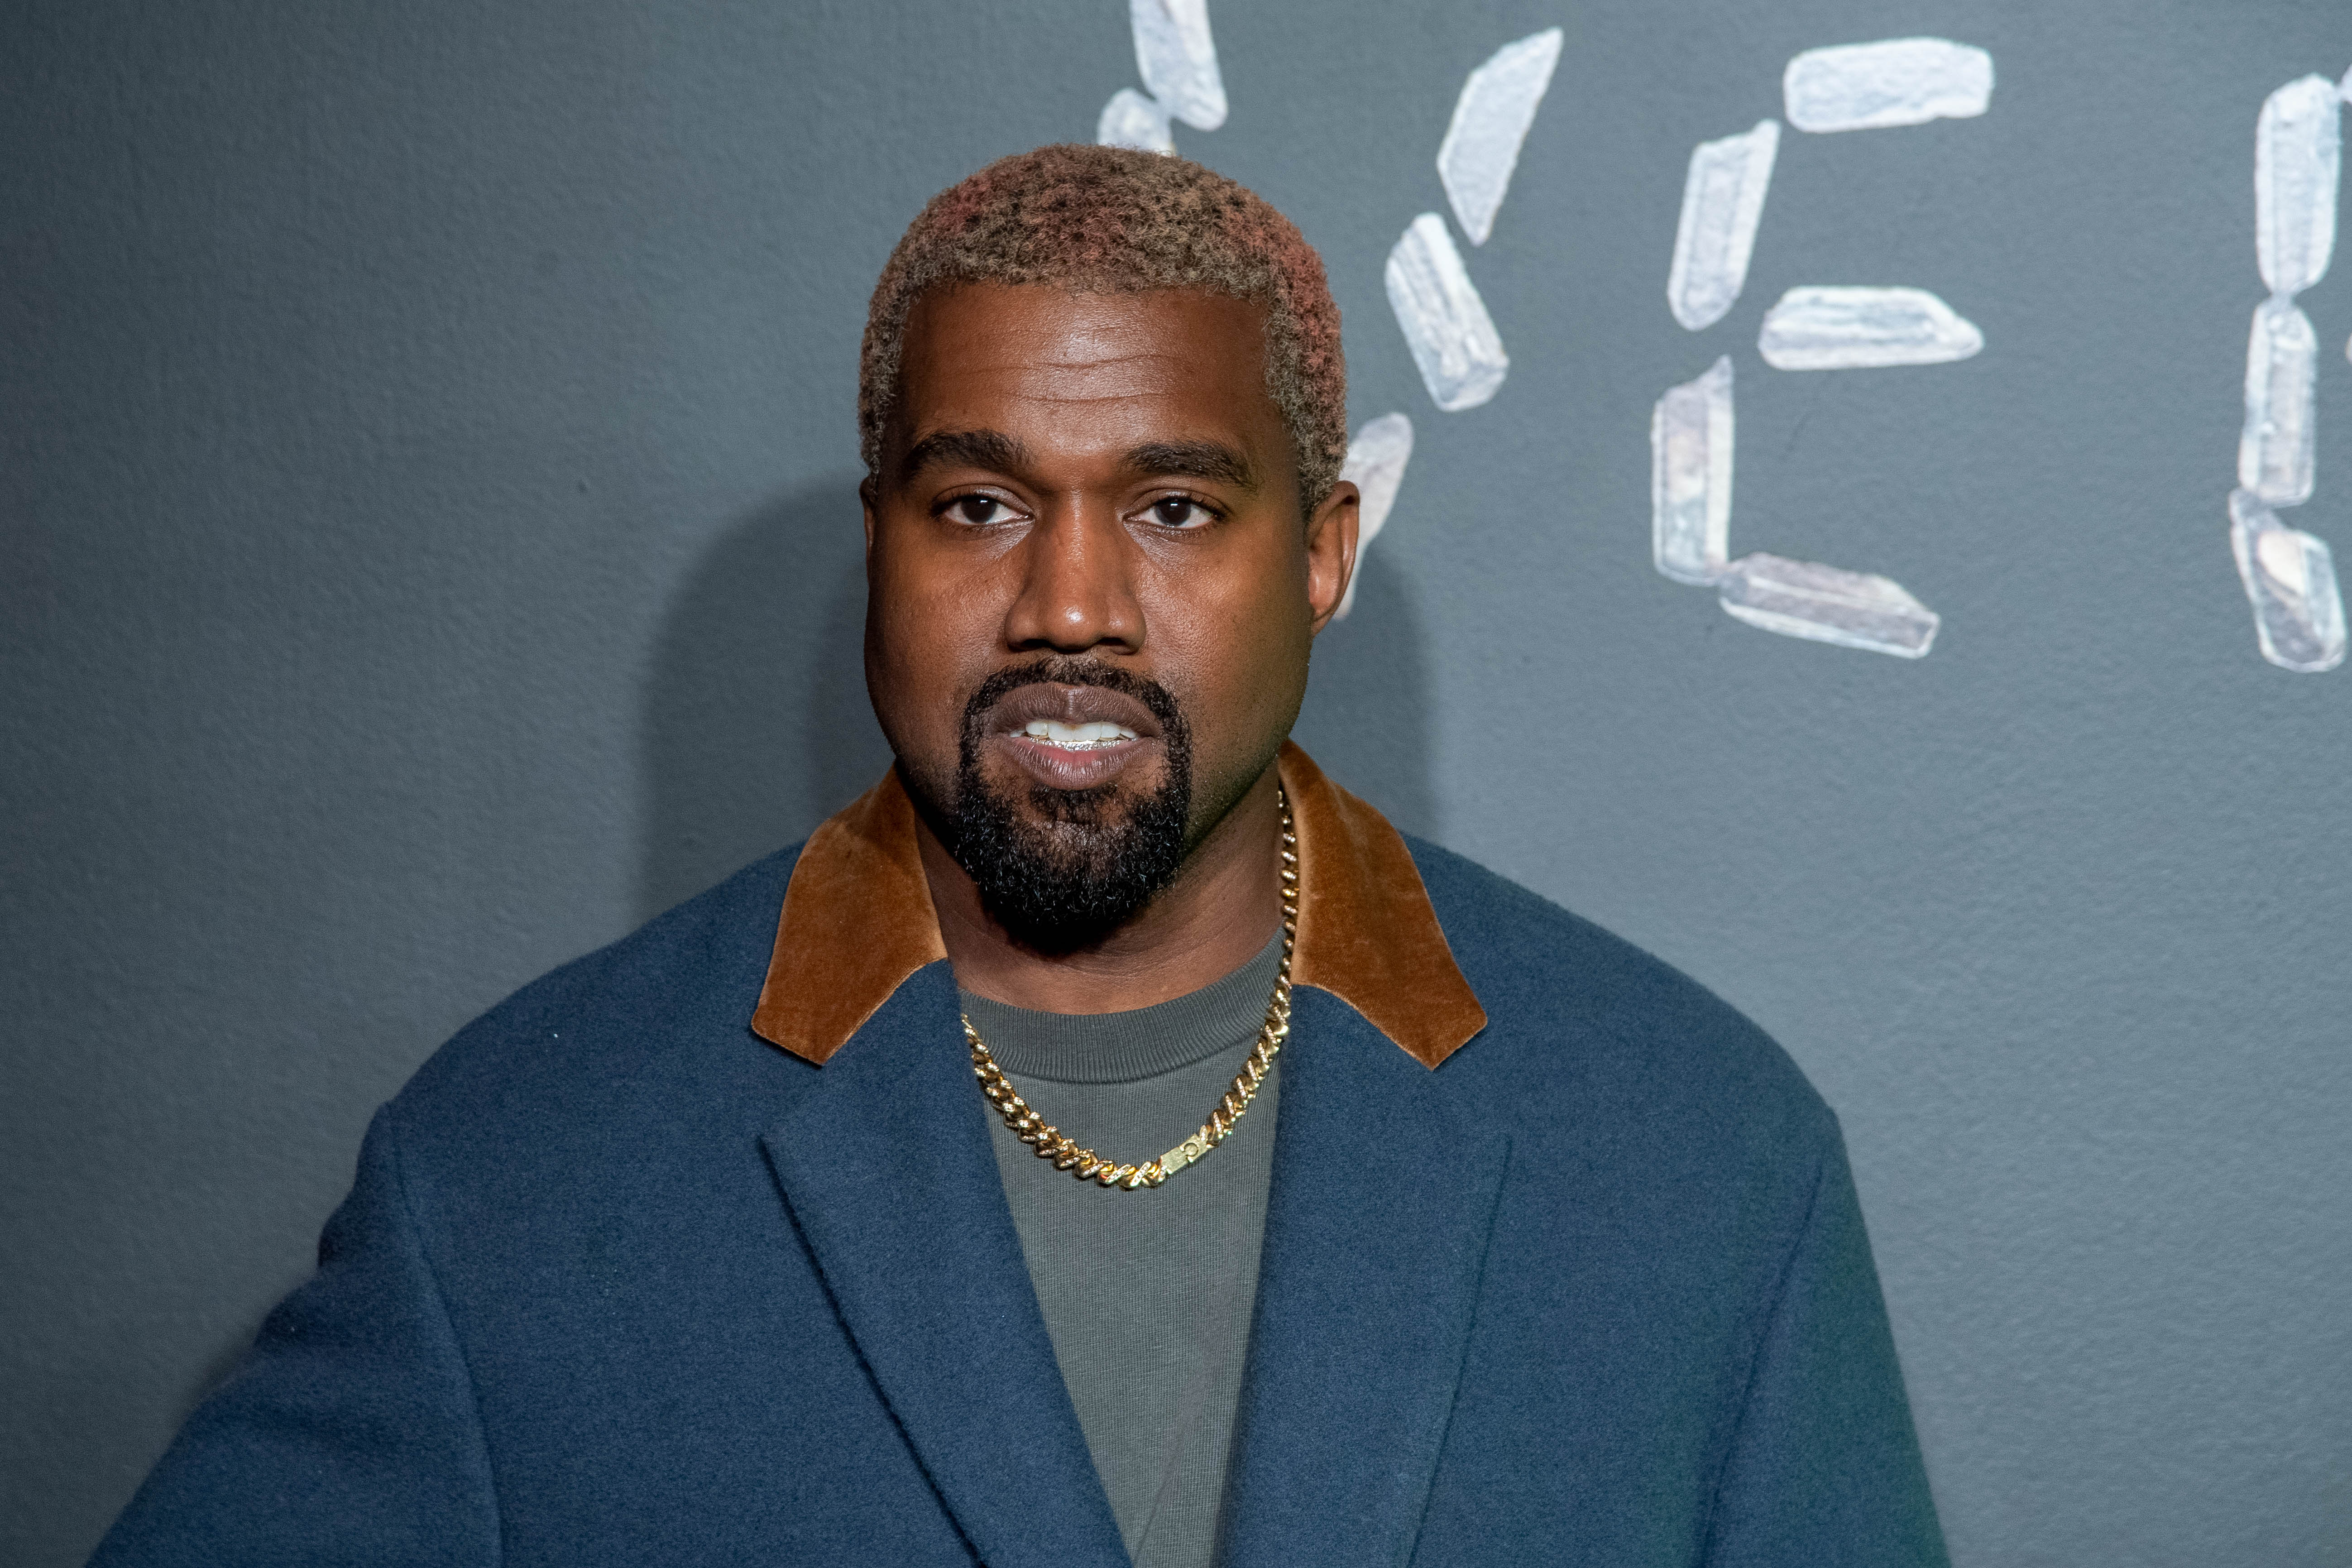 Kanye West attends the Versace fall 2019 fashion show at the American Stock Exchange Building in lower Manhattan on December 02, 2018 in New York City | Photo: GettyImages